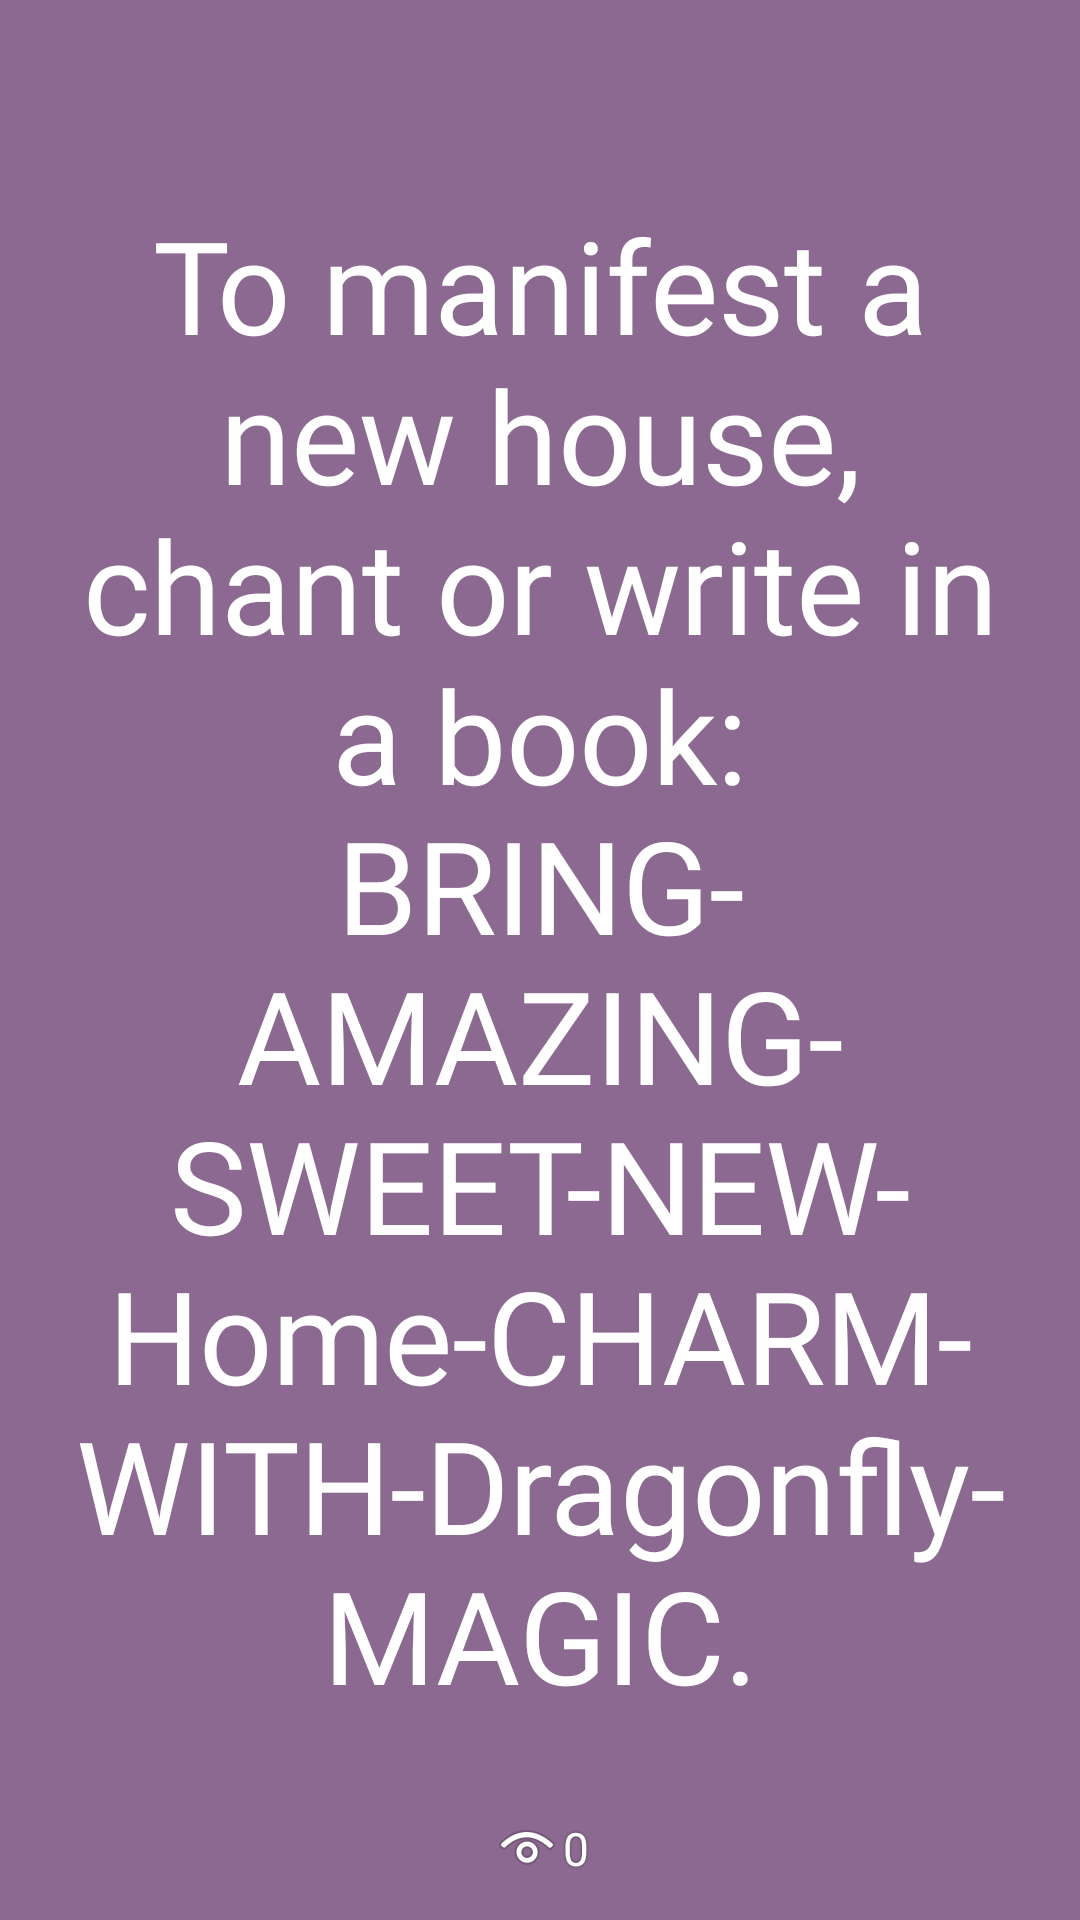 Buy a new house SWP | Switchword Phrases | Switch words